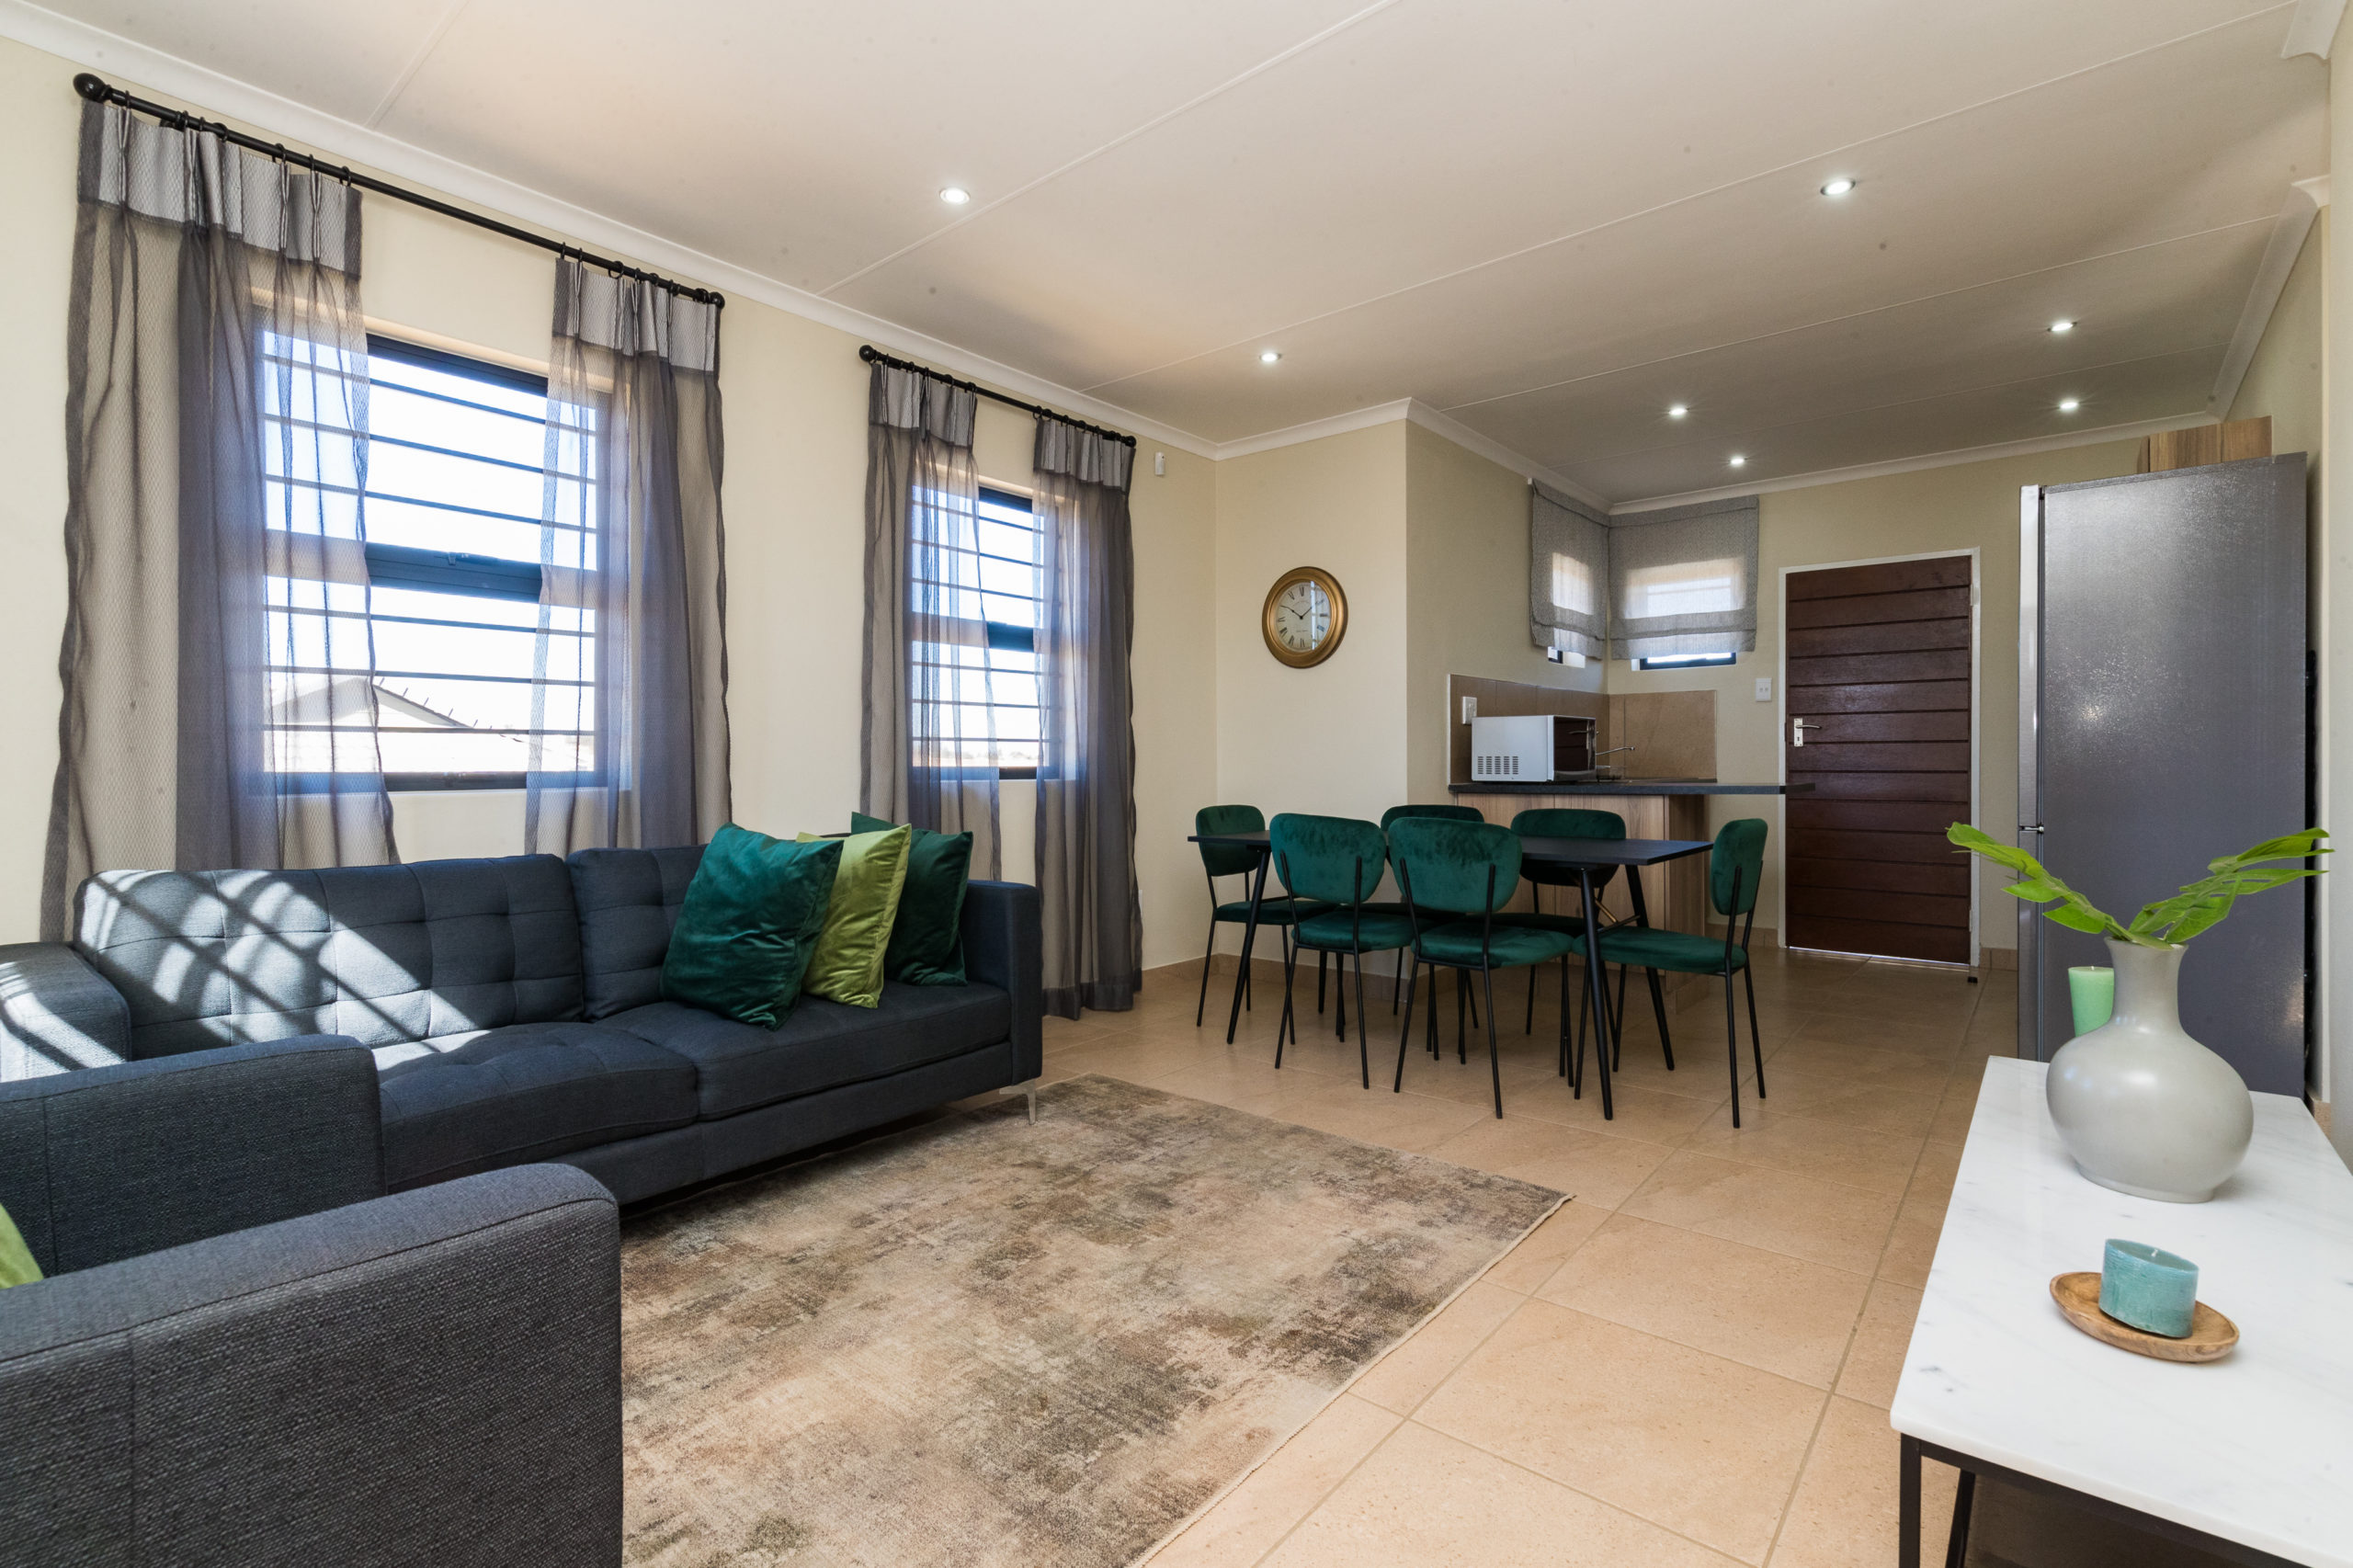 Royal Cradle, Homes for Sale in Mindalore, Gauteng - Lounge, Dining and Kitchen